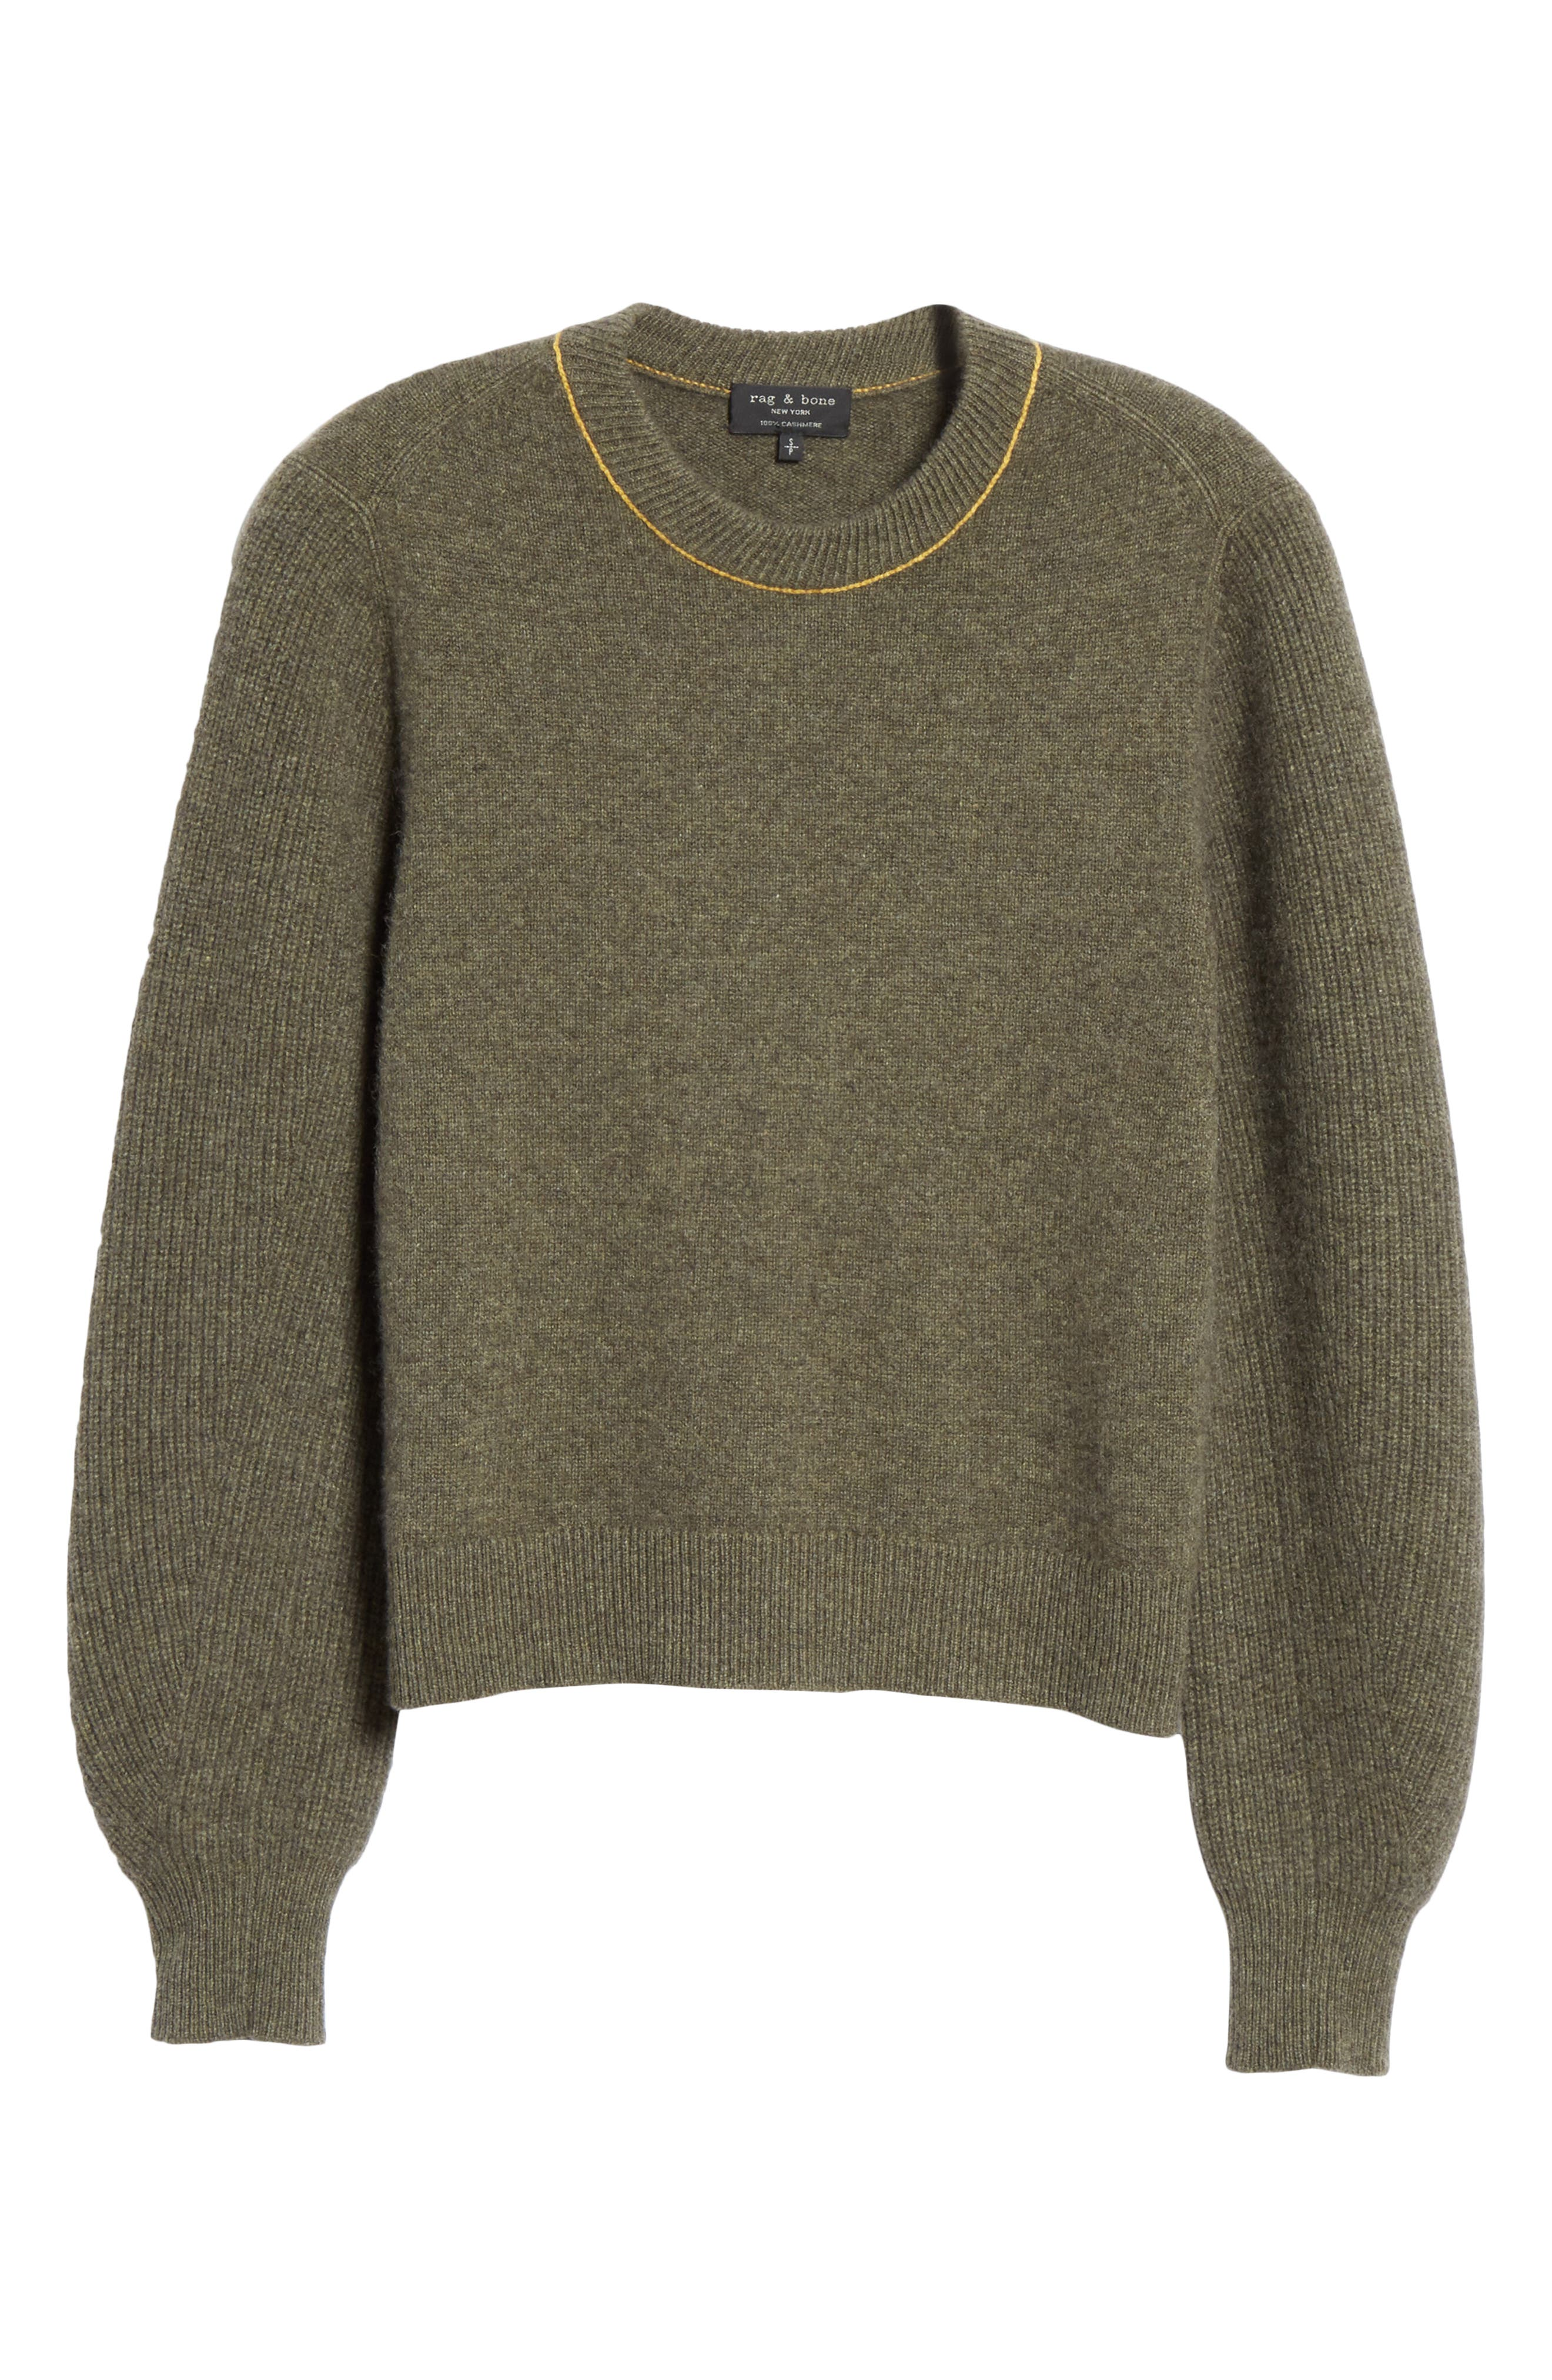 Yorke Cashmere Sweater,                             Alternate thumbnail 6, color,                             ARMY